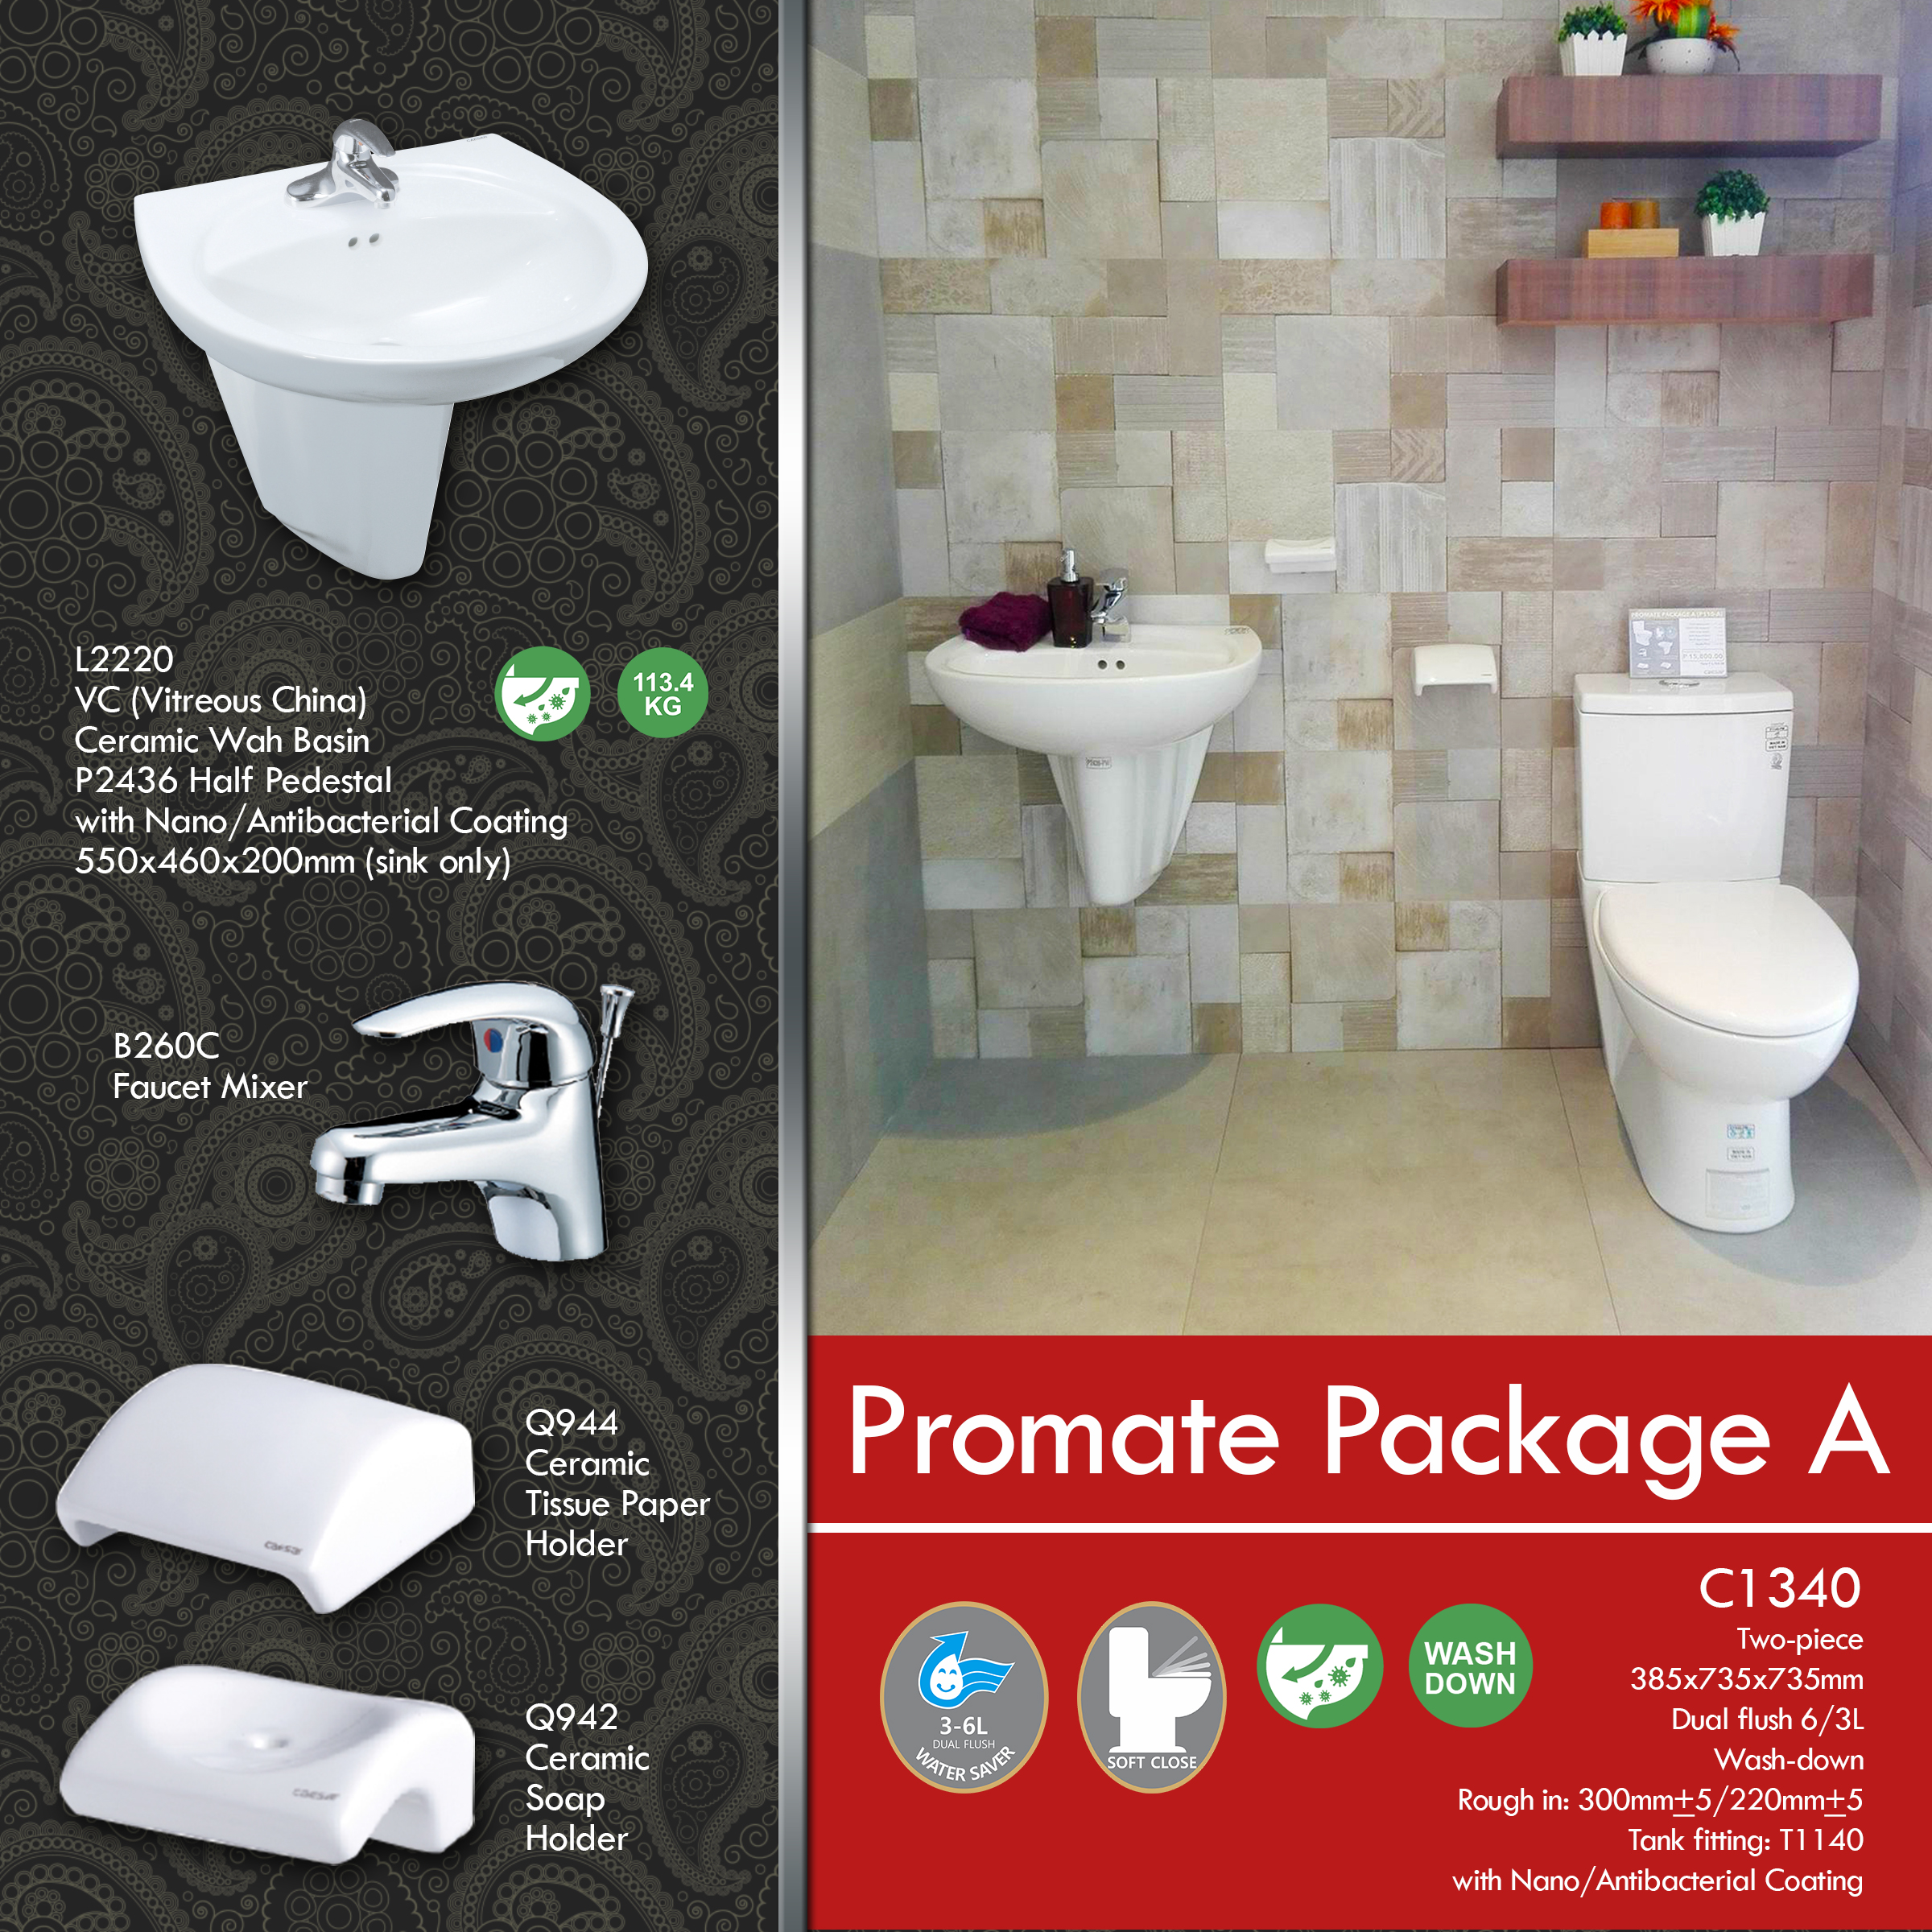 PROMATE PACKAGE A